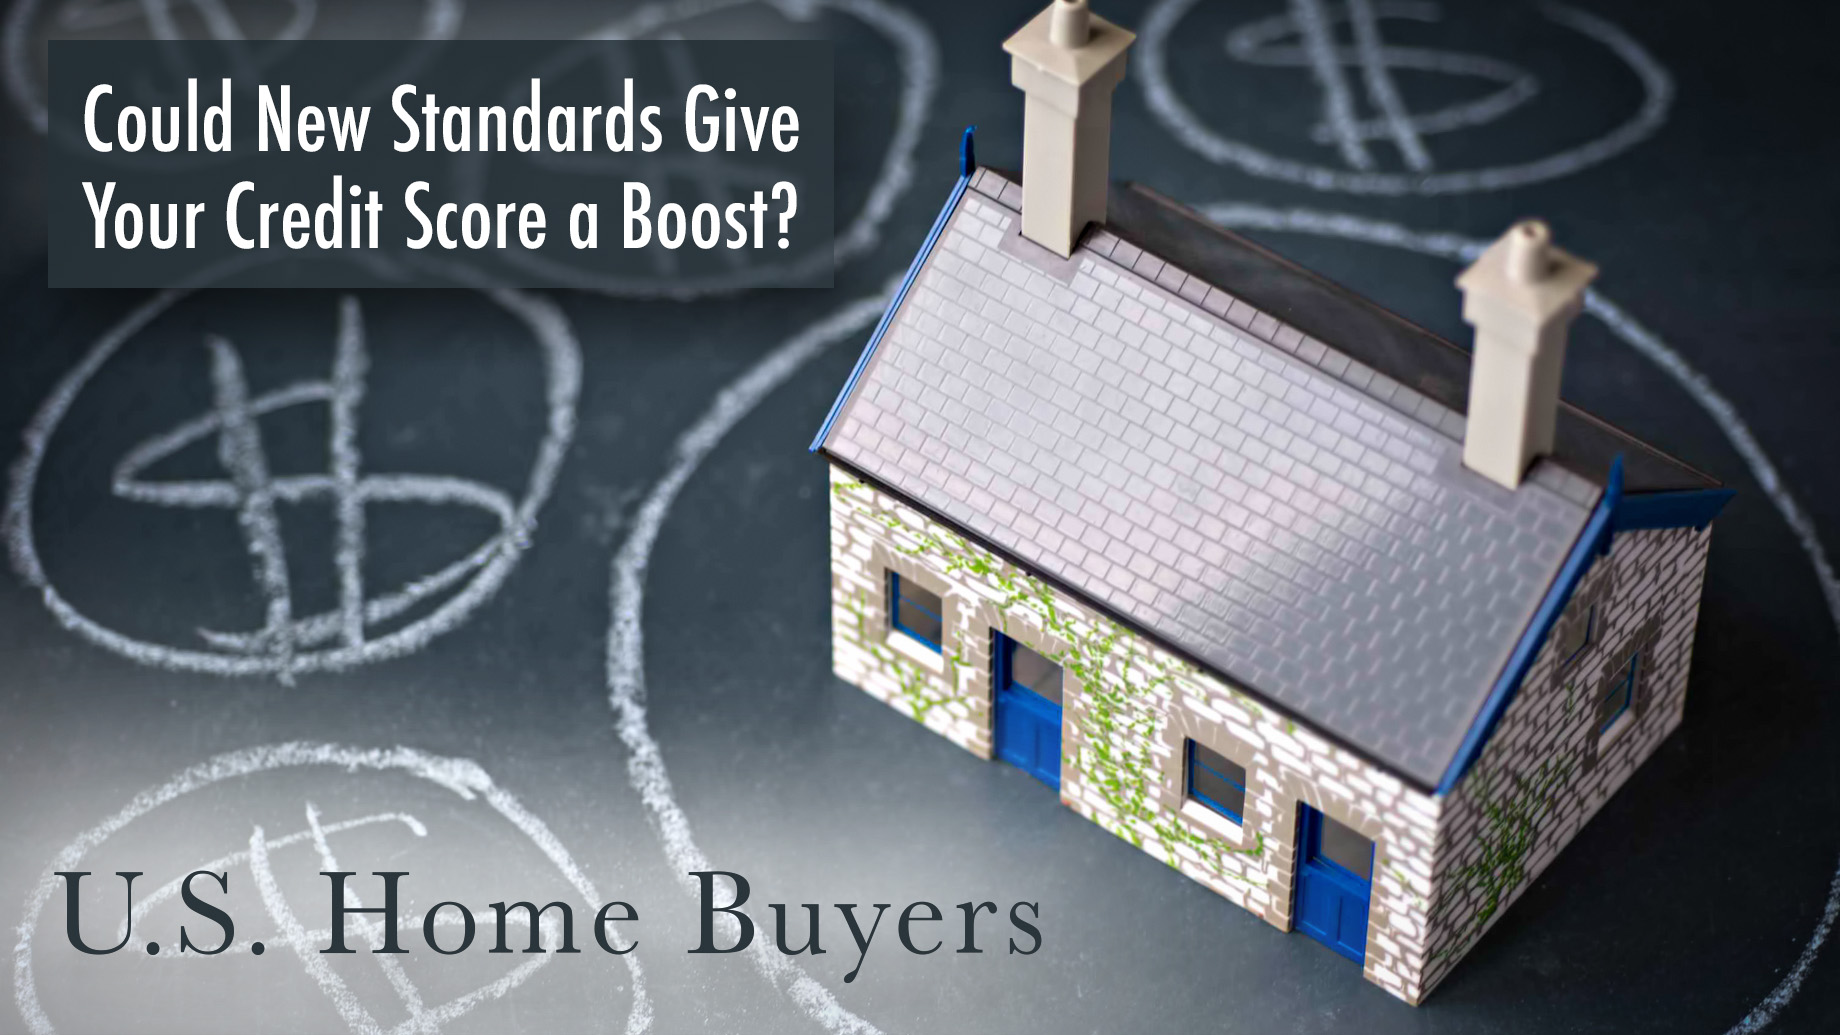 U.S. Home Buyers - Could New Standards Give Your Credit Score a Boost?